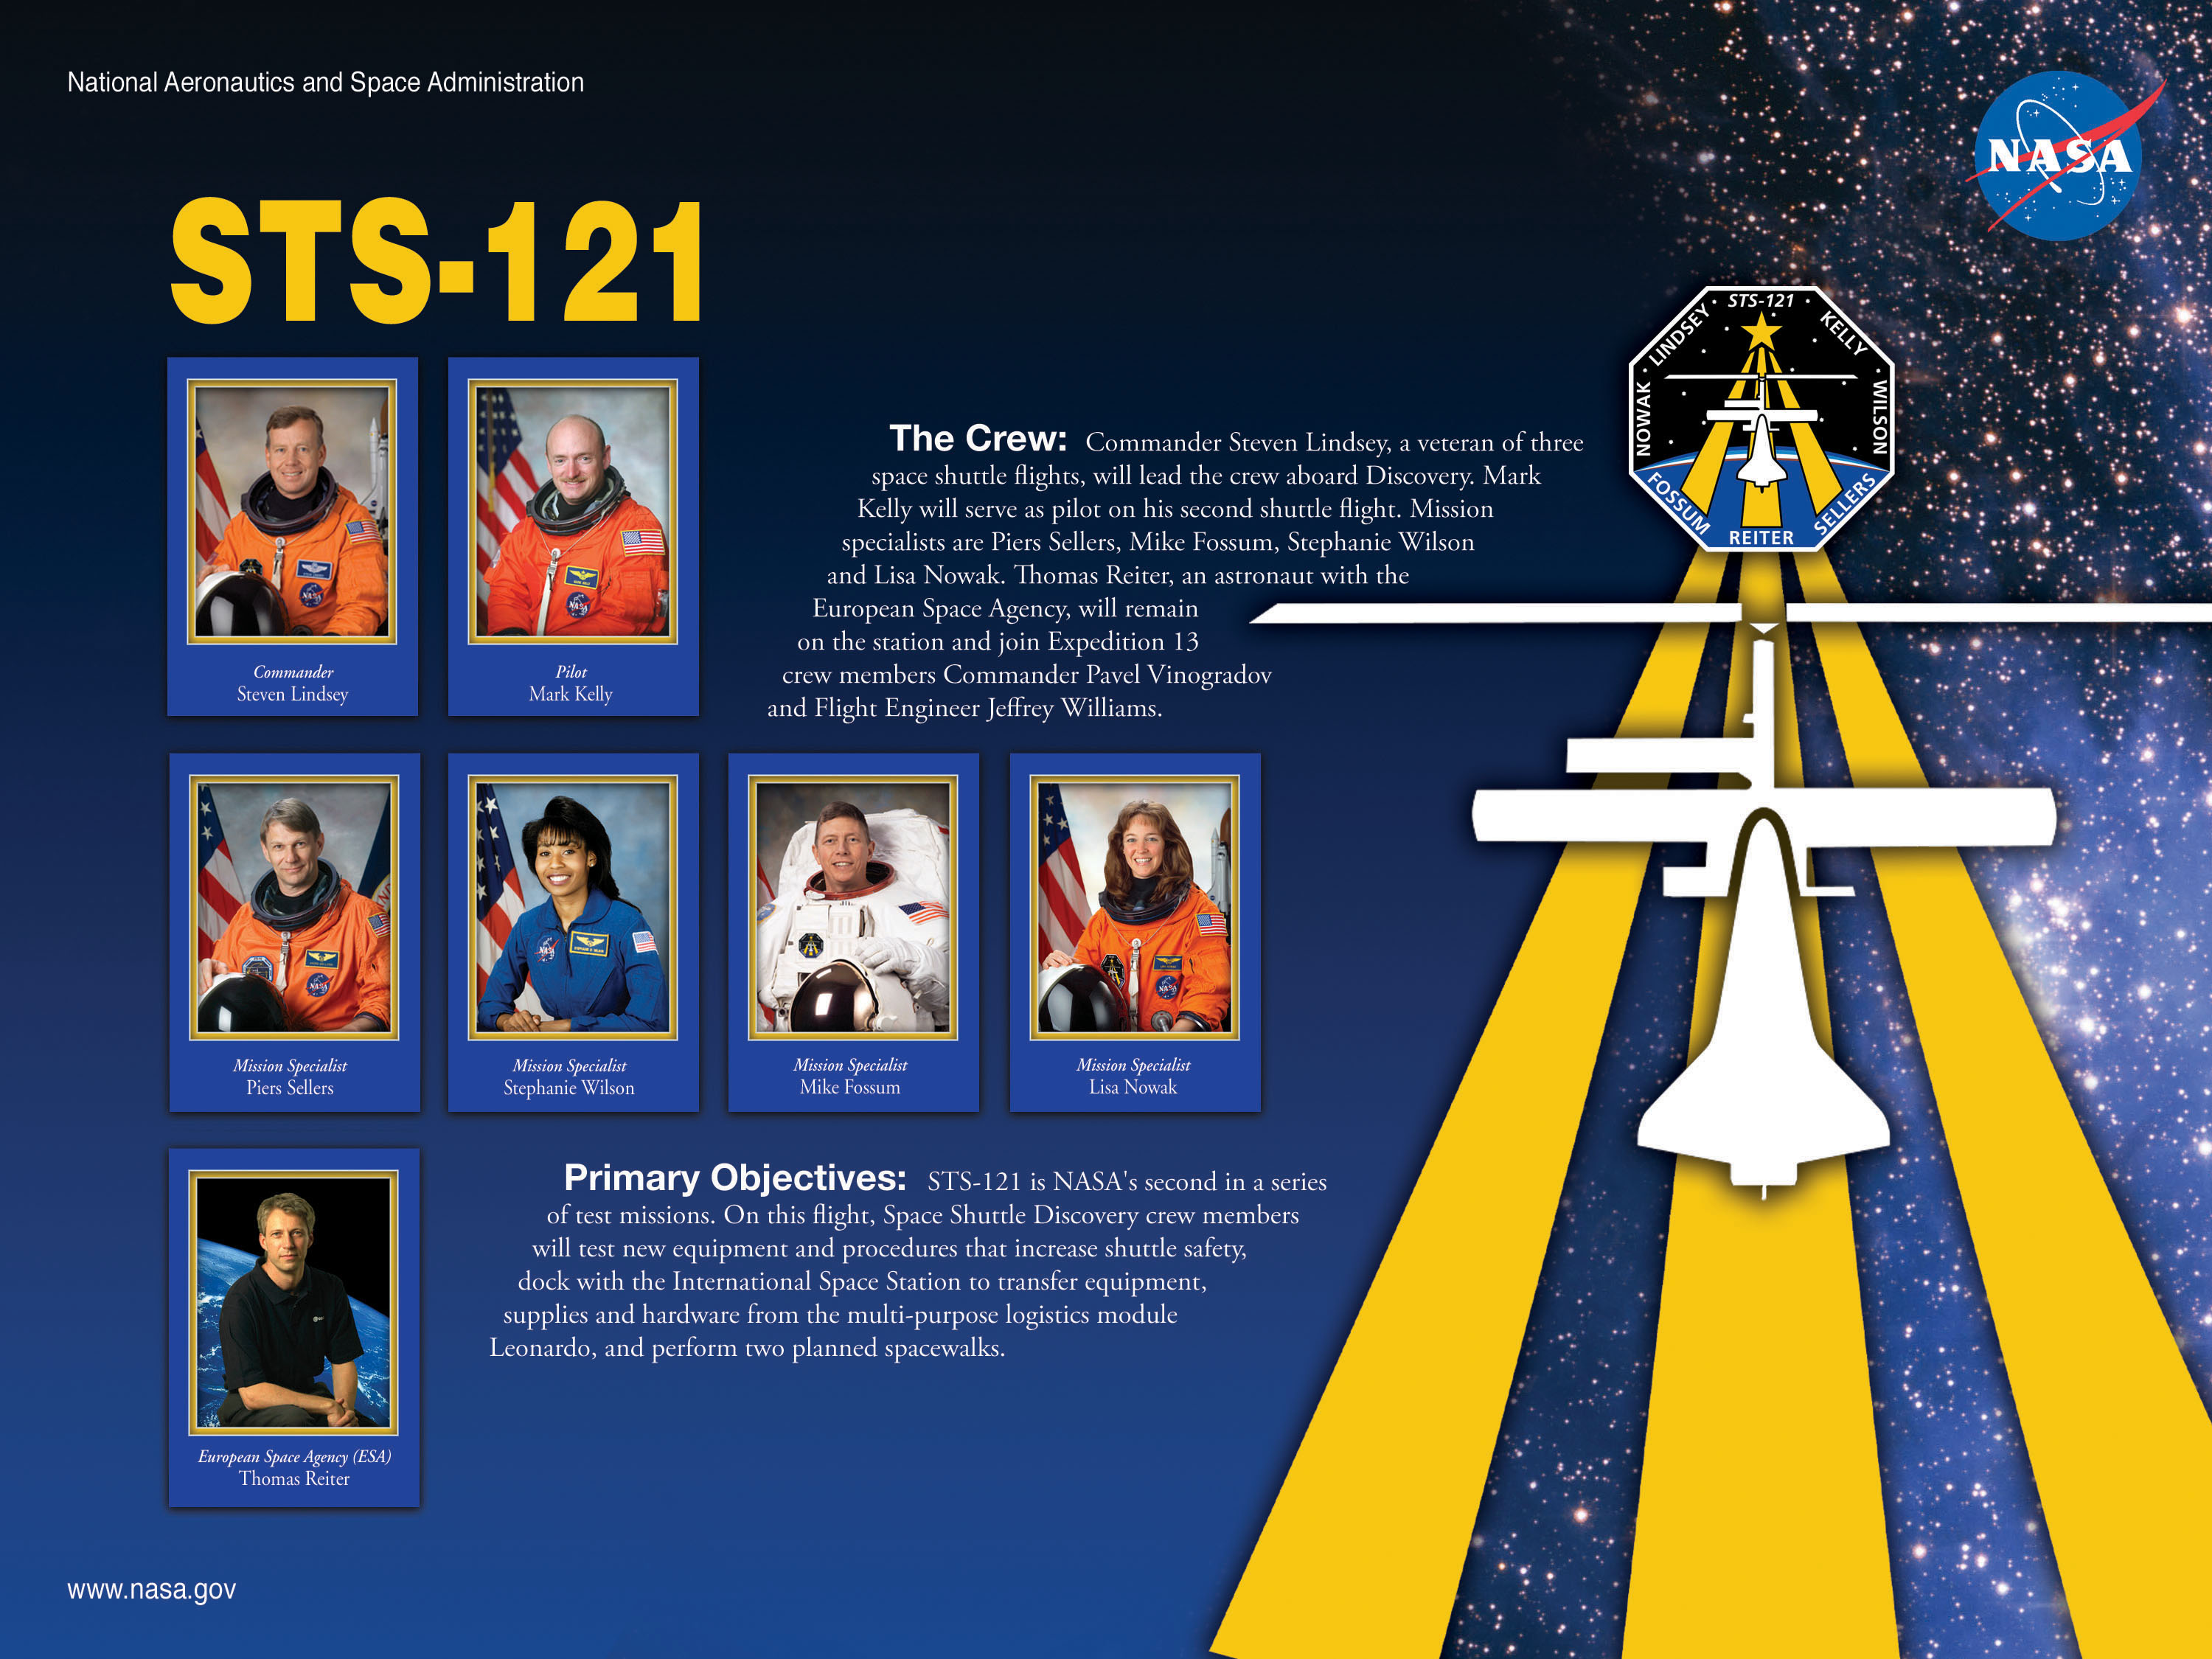 STS-121 Mission Poster. Image credit NASA